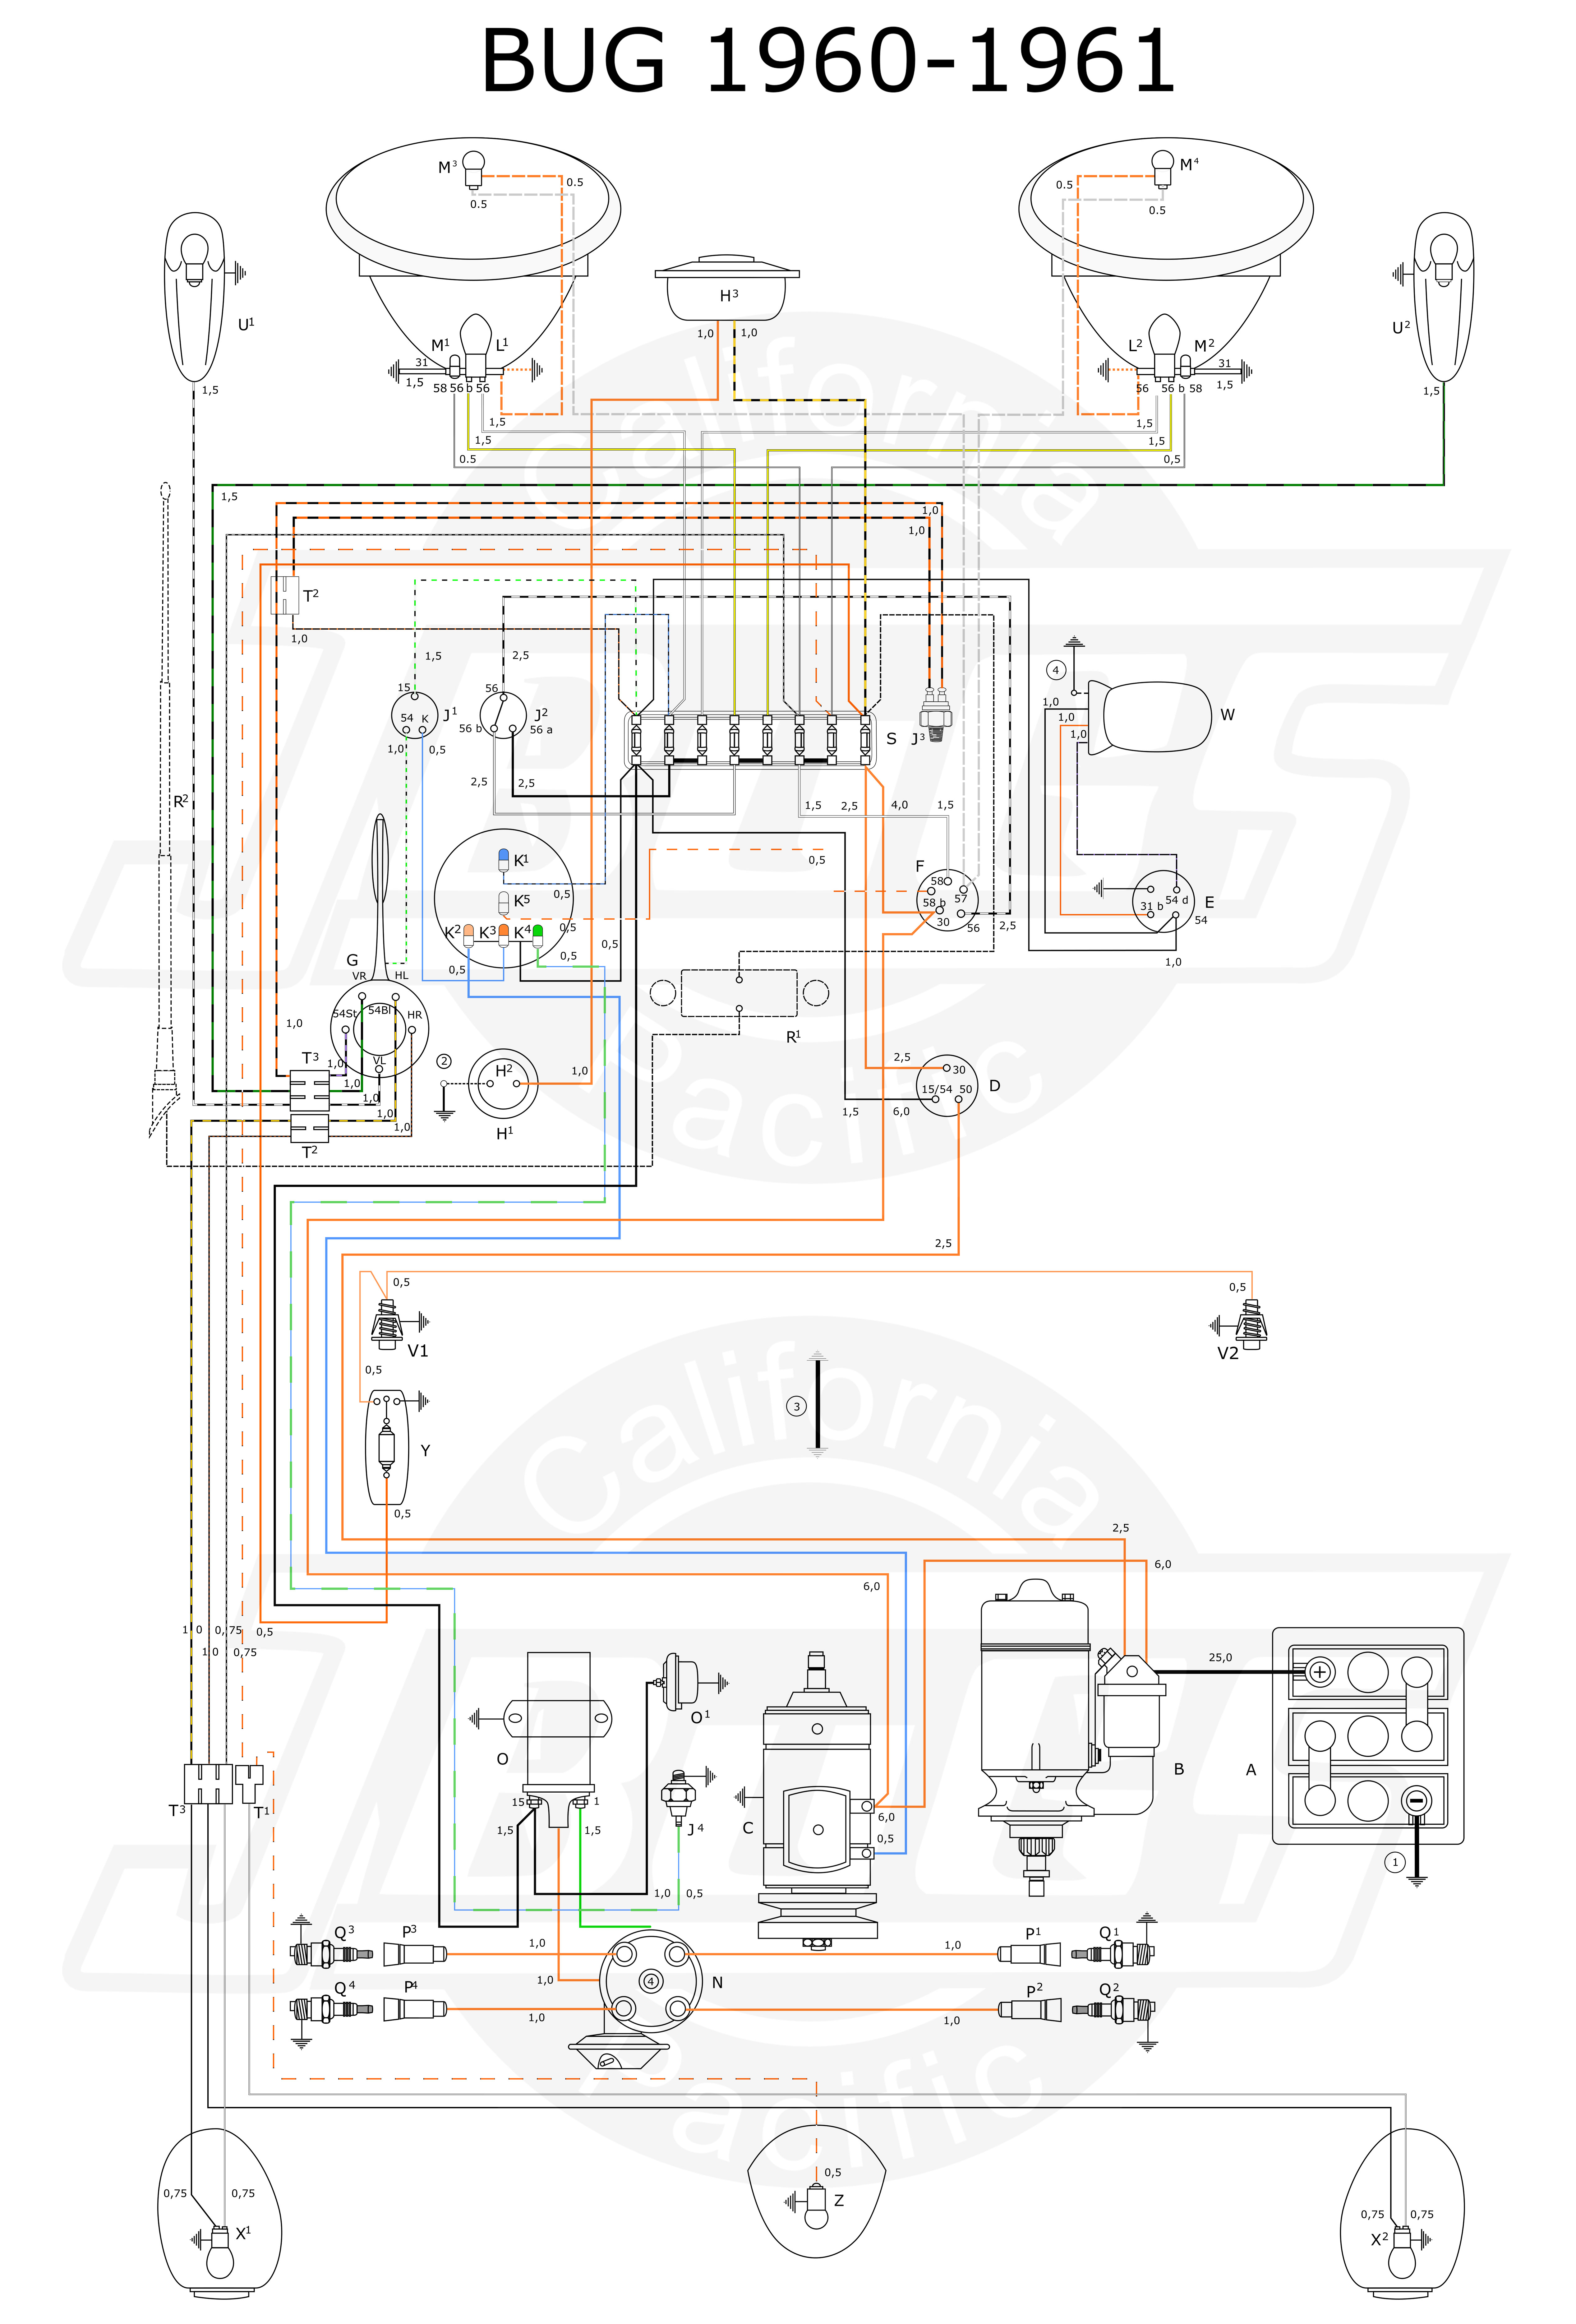 1970 Volkswagen Beetle Wiring Diagram from static-resources.imageservice.cloud